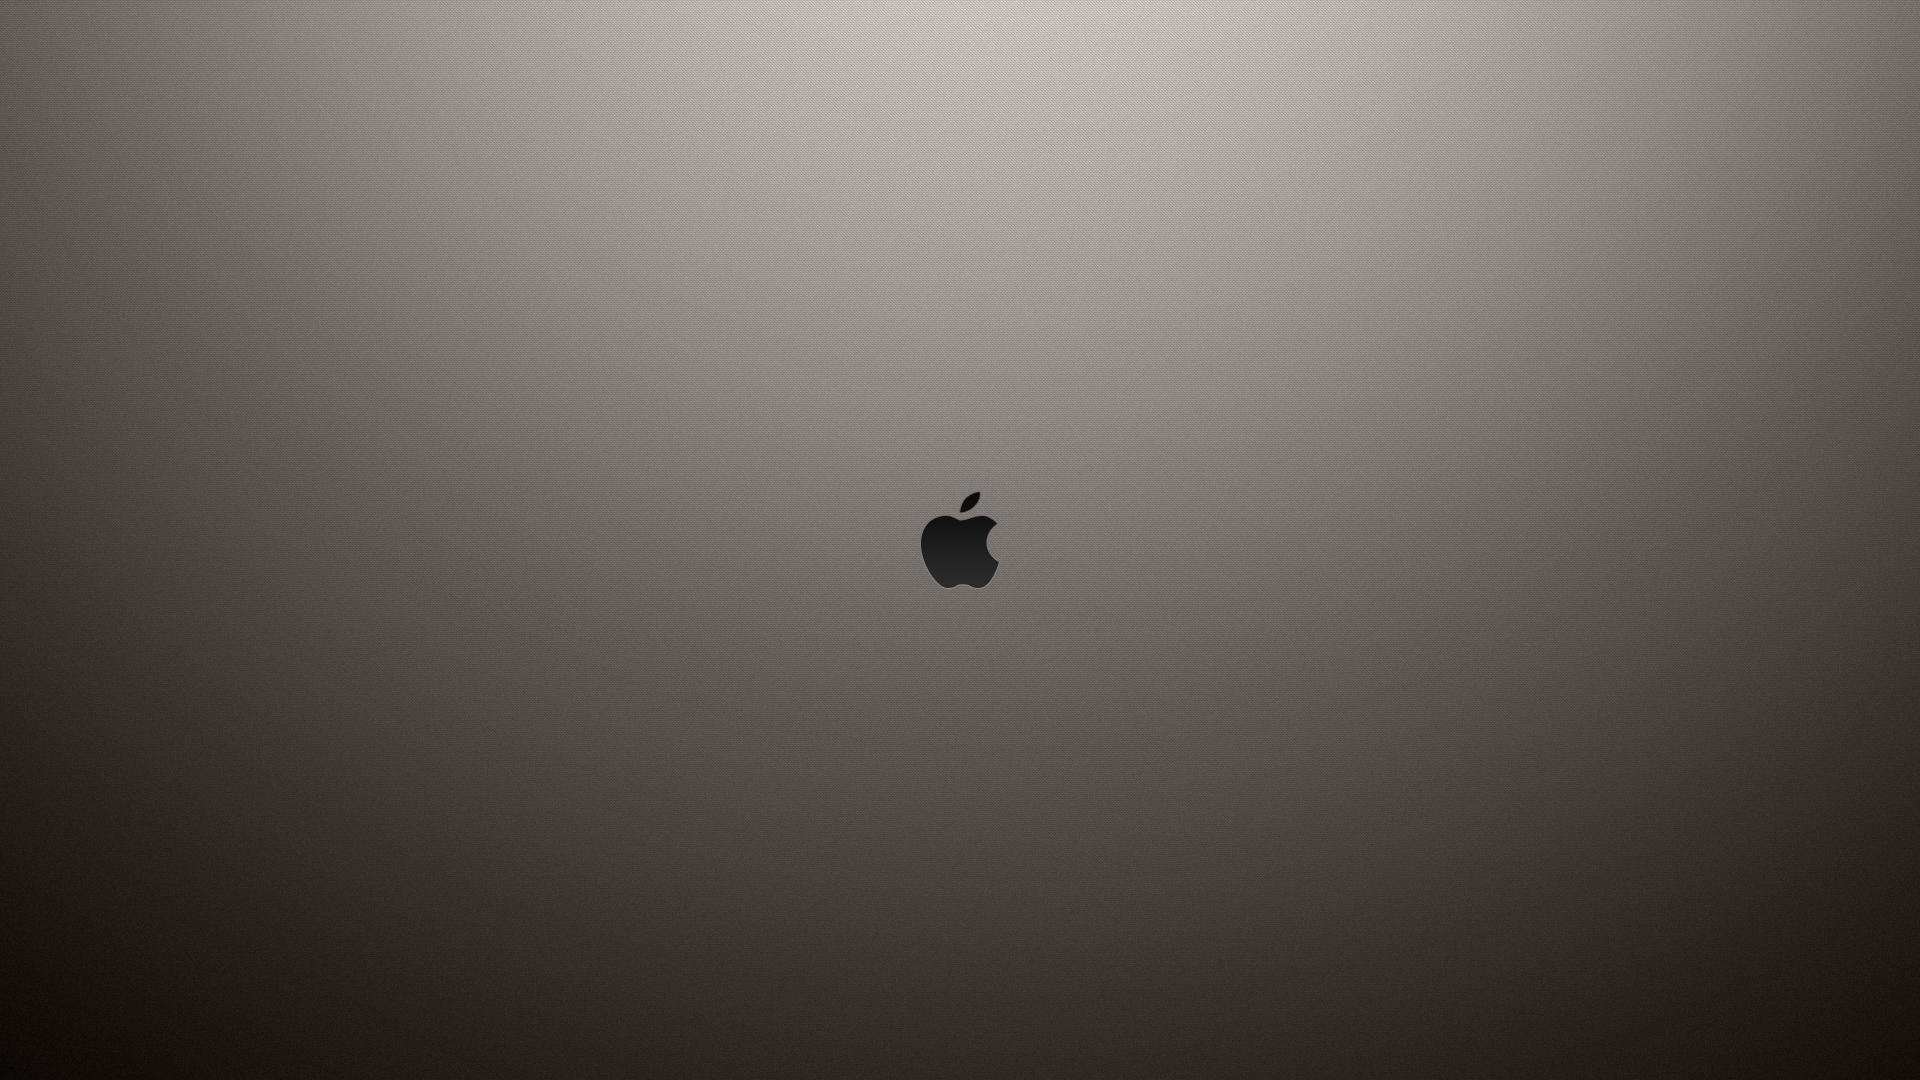 apple logo wallpaper black. tint-apple-logo-wallpaper.jpg (1920×1080) | apple logo wallpaper pinterest logo, and hd black